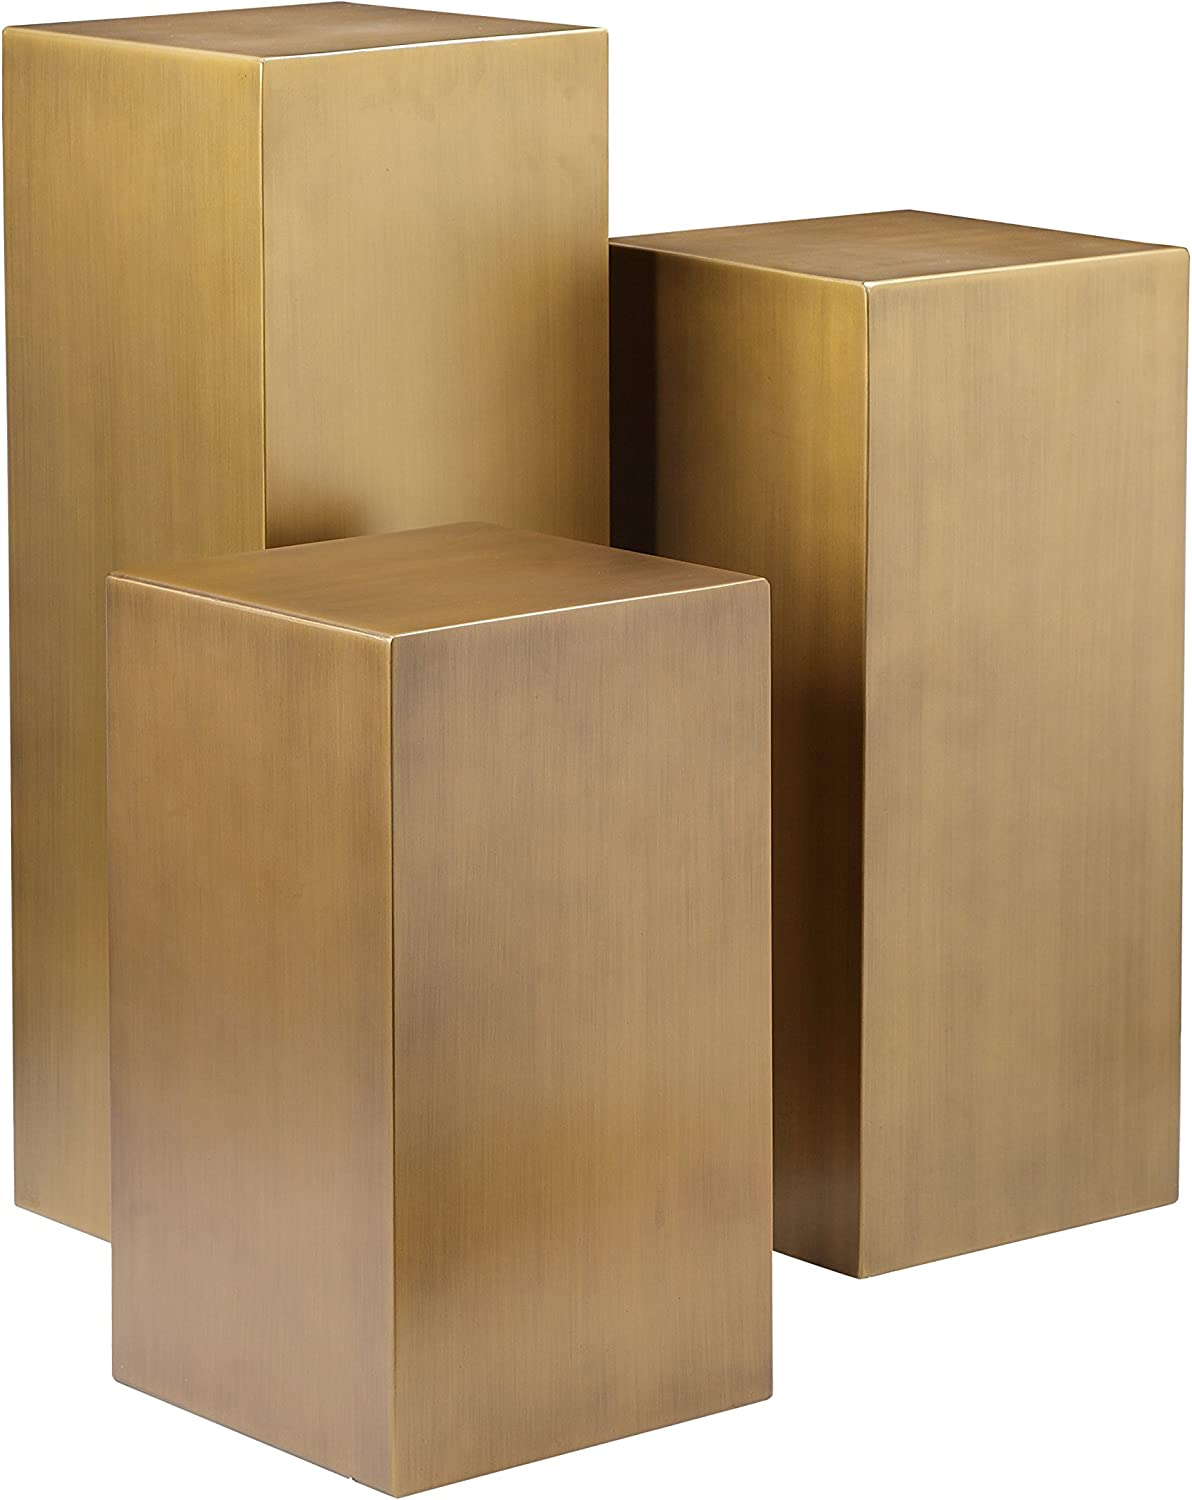 ApexStore Cube 3 - Piece Set Brushed Brass Free shipping New Pedestal Ranking TOP18 Table